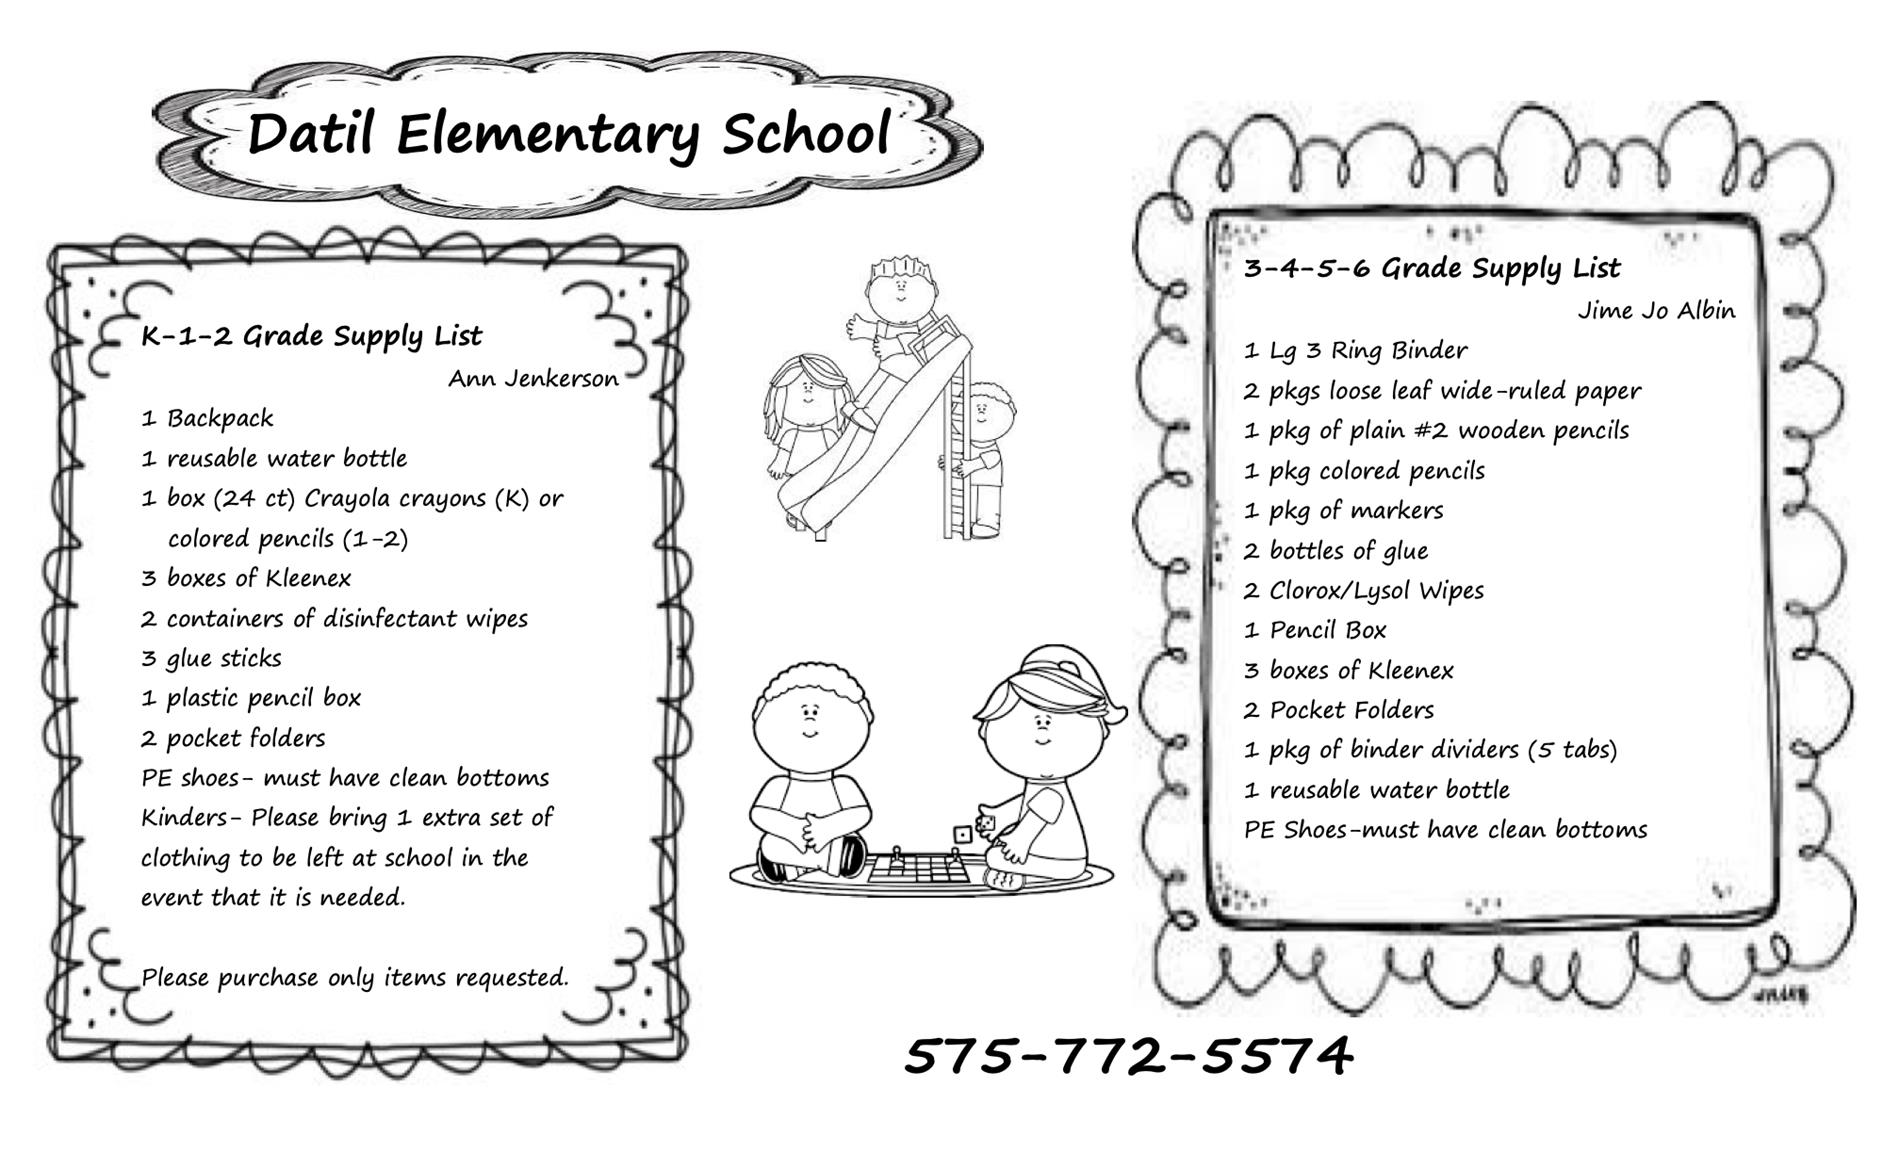 Datil Elementary Classrooms Supply Lists